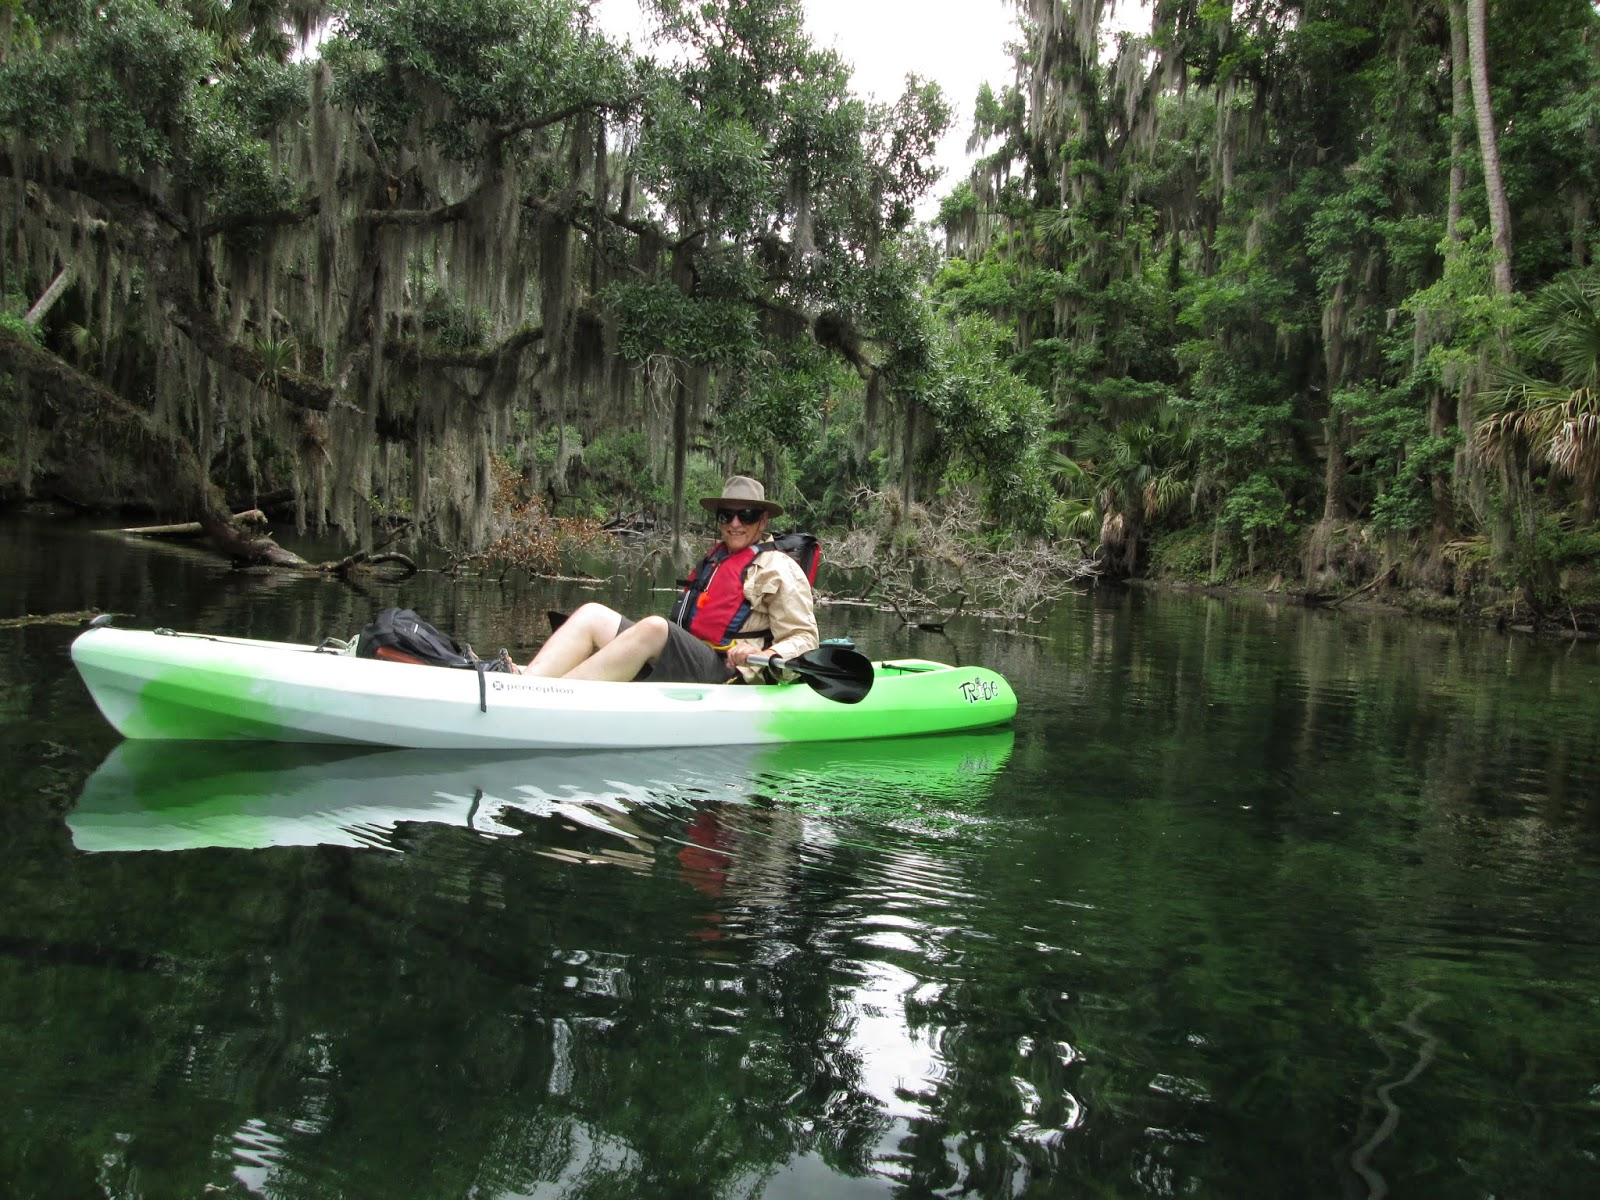 Canoeing around redhead fl for the